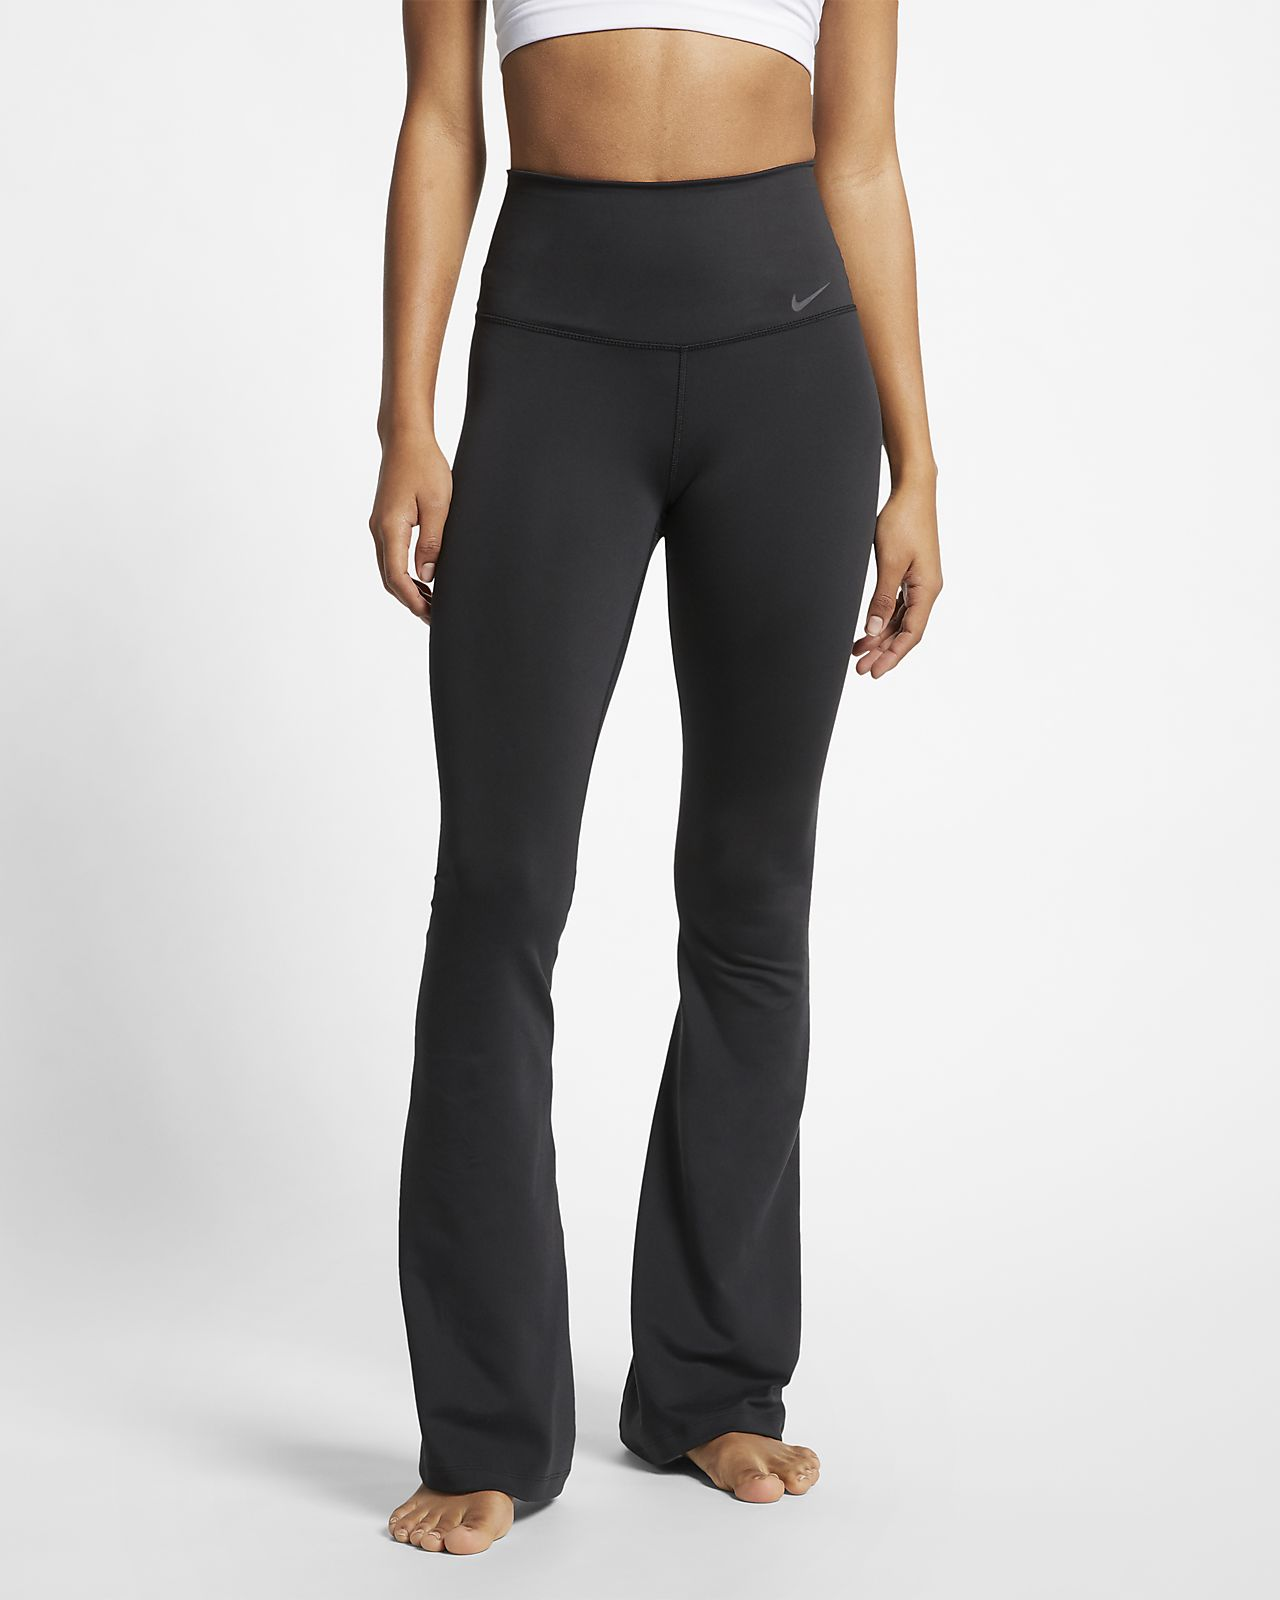 Nike Power Dri-FIT Trainings-Tights für Damen